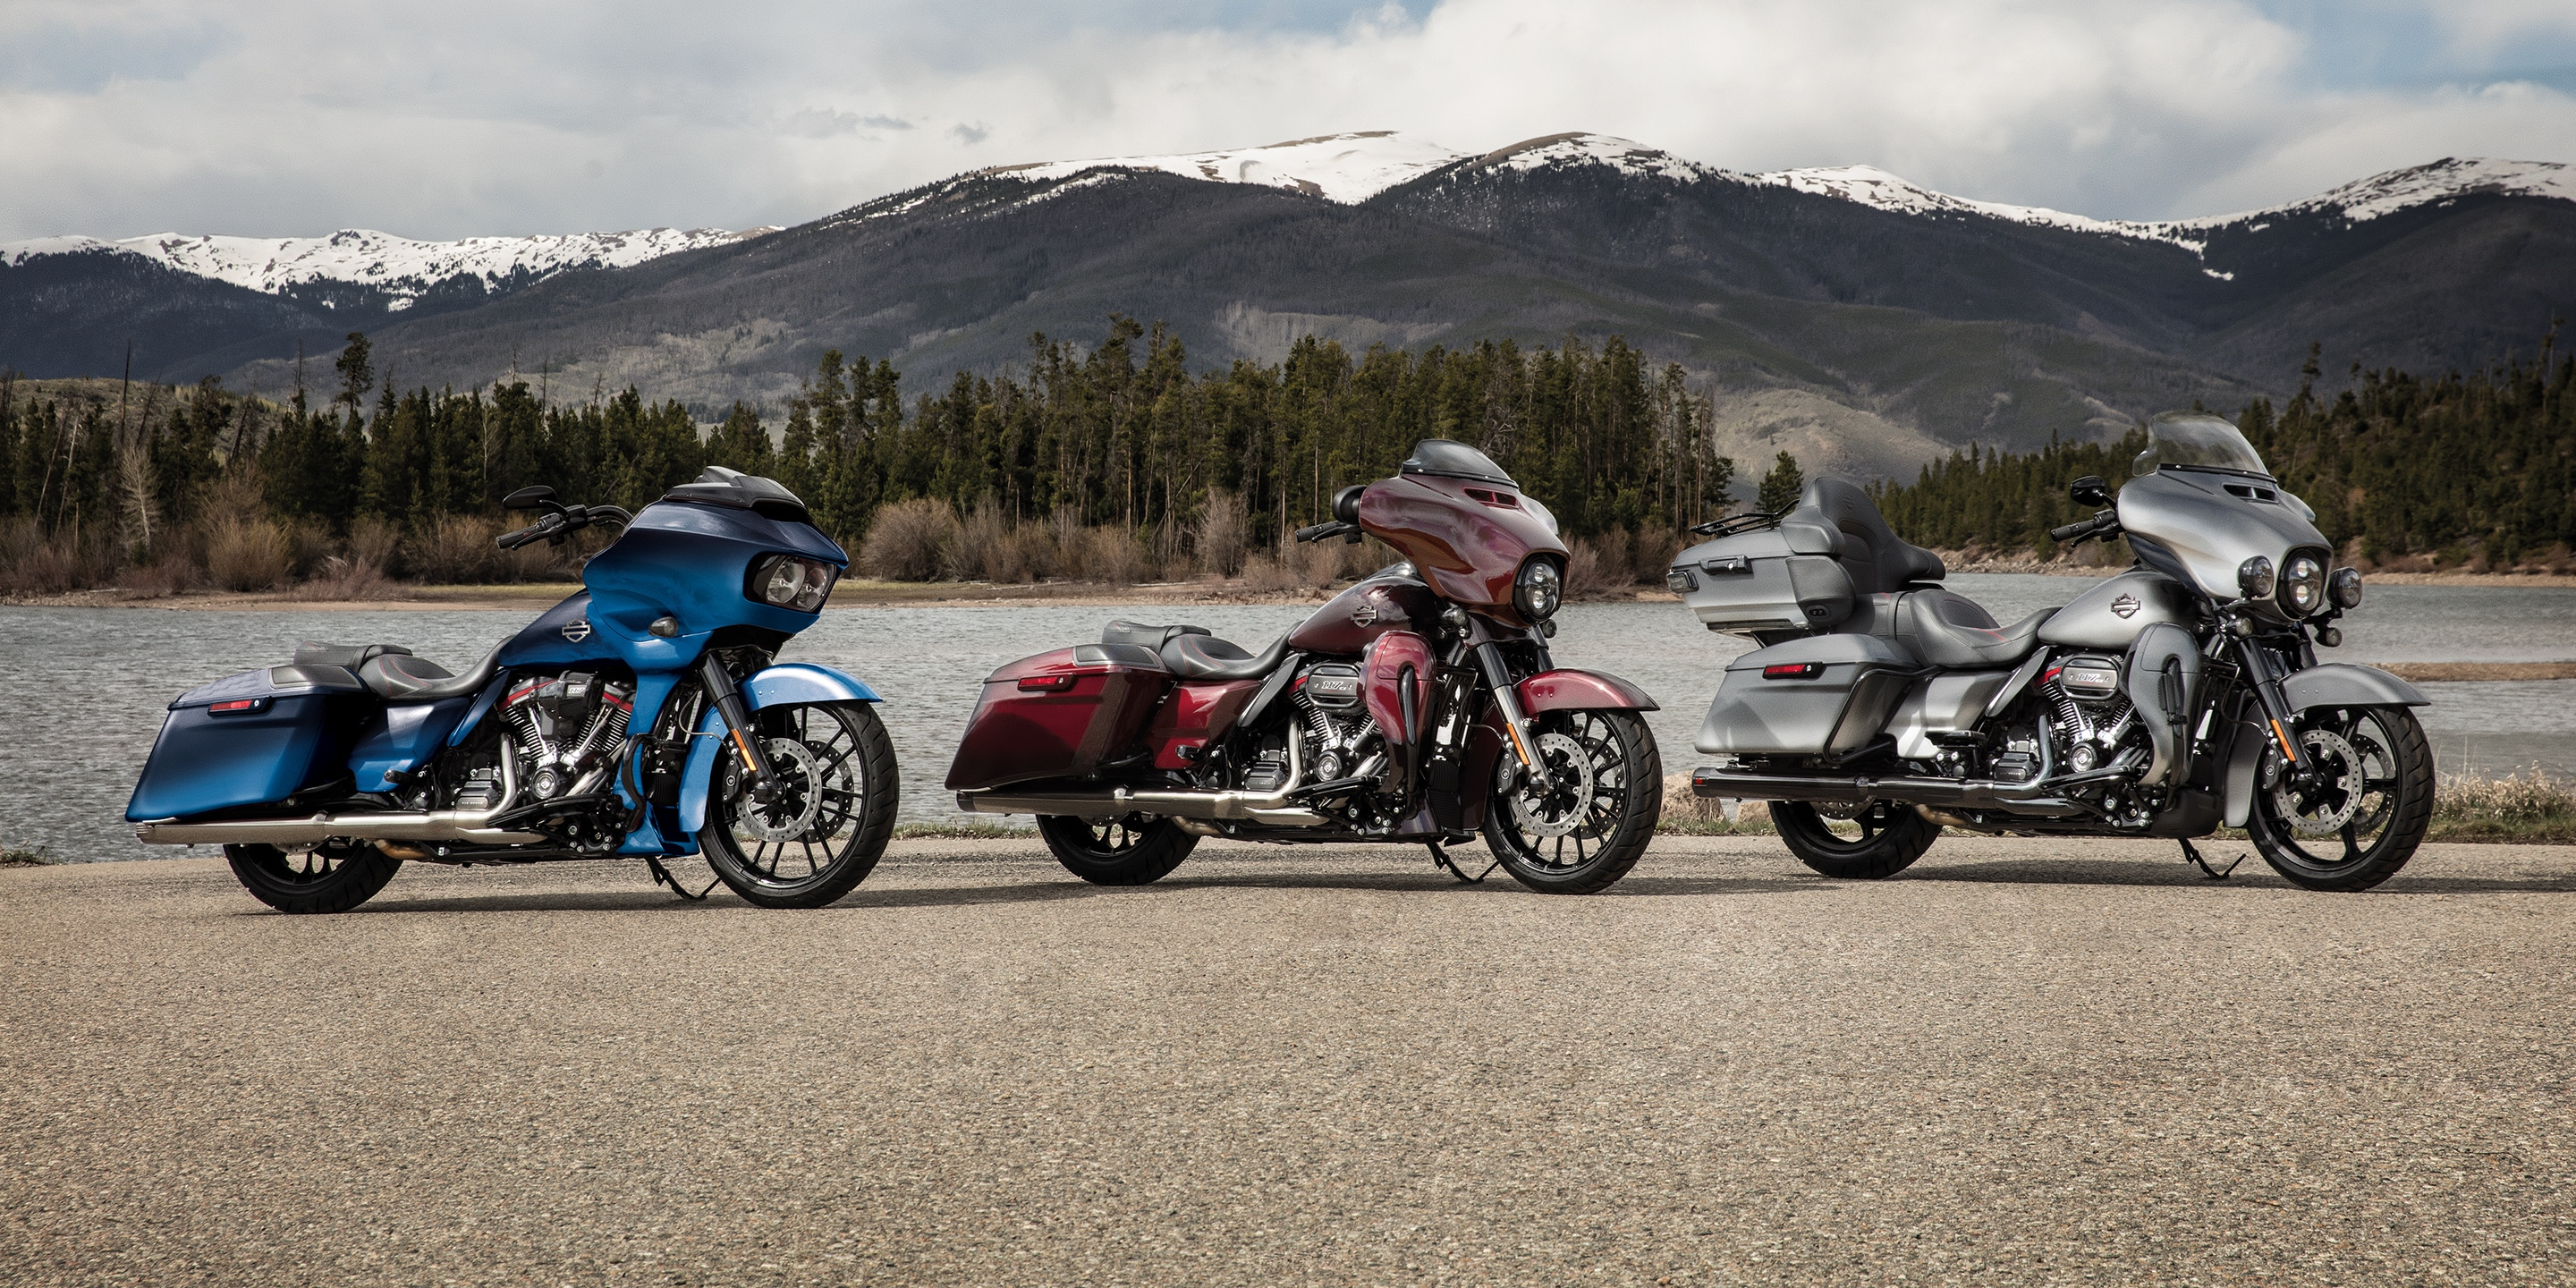 Three CVO Harley-Davidson Motorcycles Parked In Front Of A Mountain Range